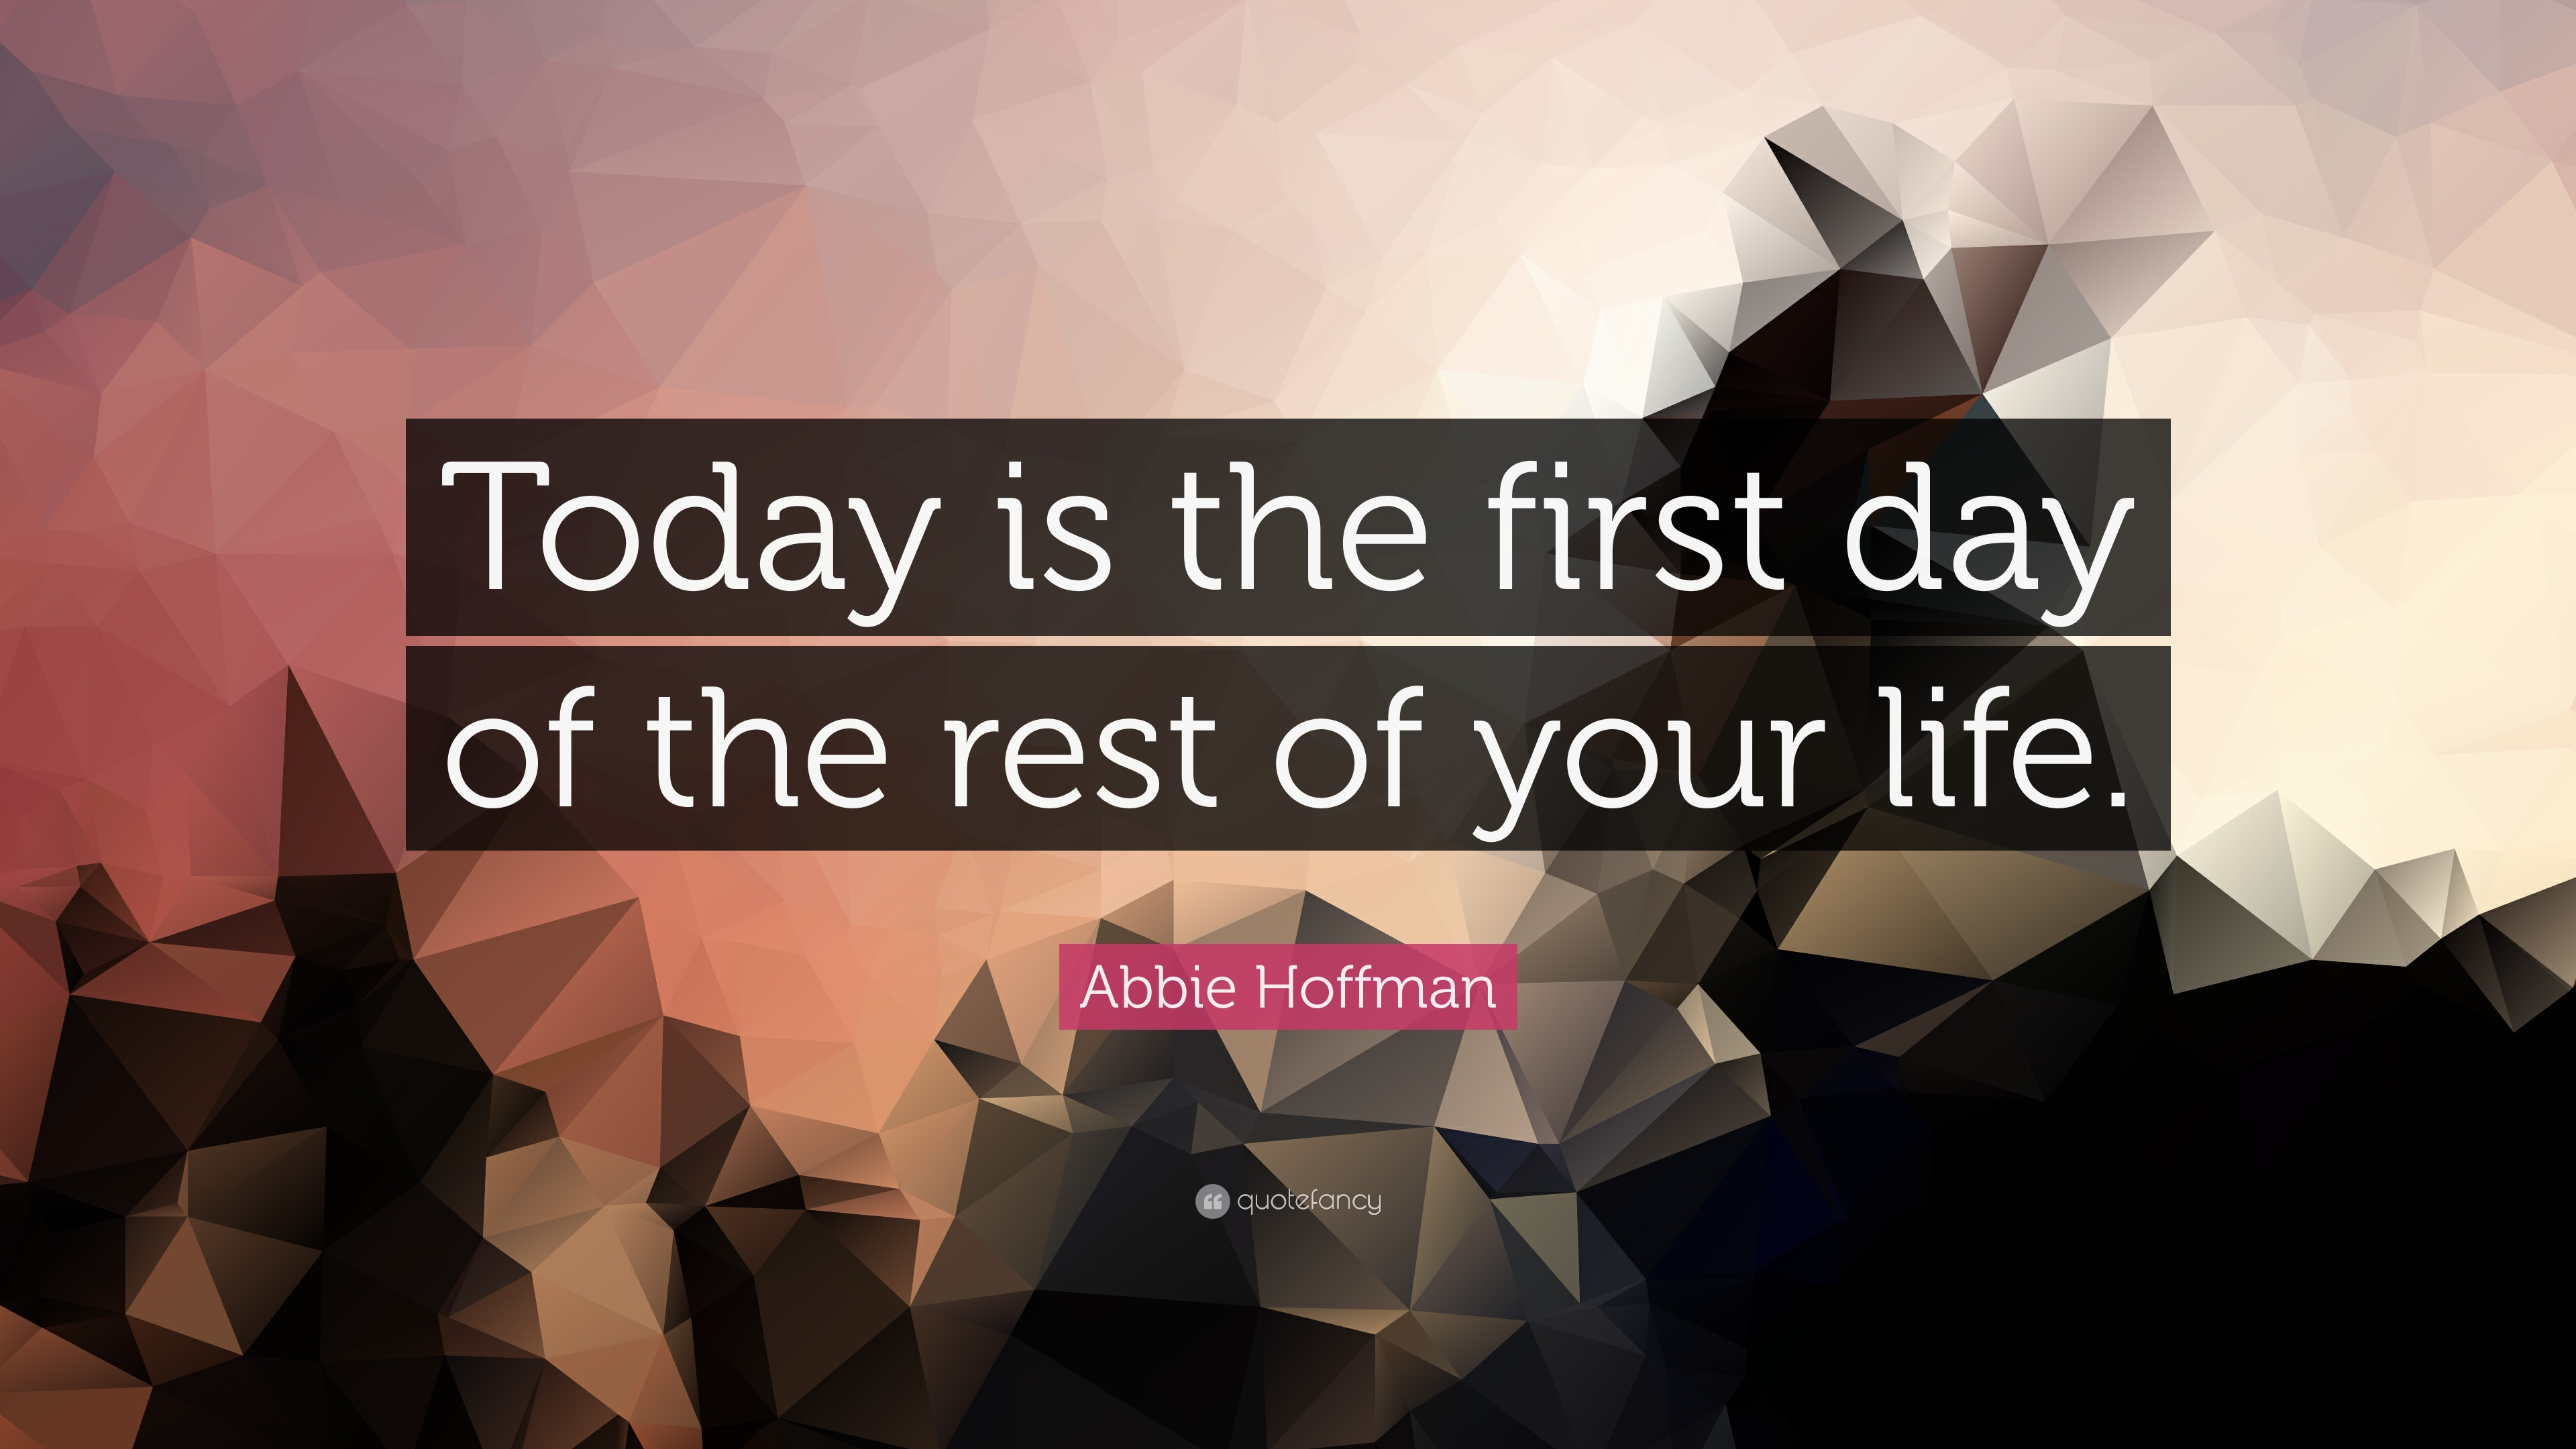 Douglas Adams Quotes Wallpaper Abbie Hoffman Quote Today Is The First Day Of The Rest